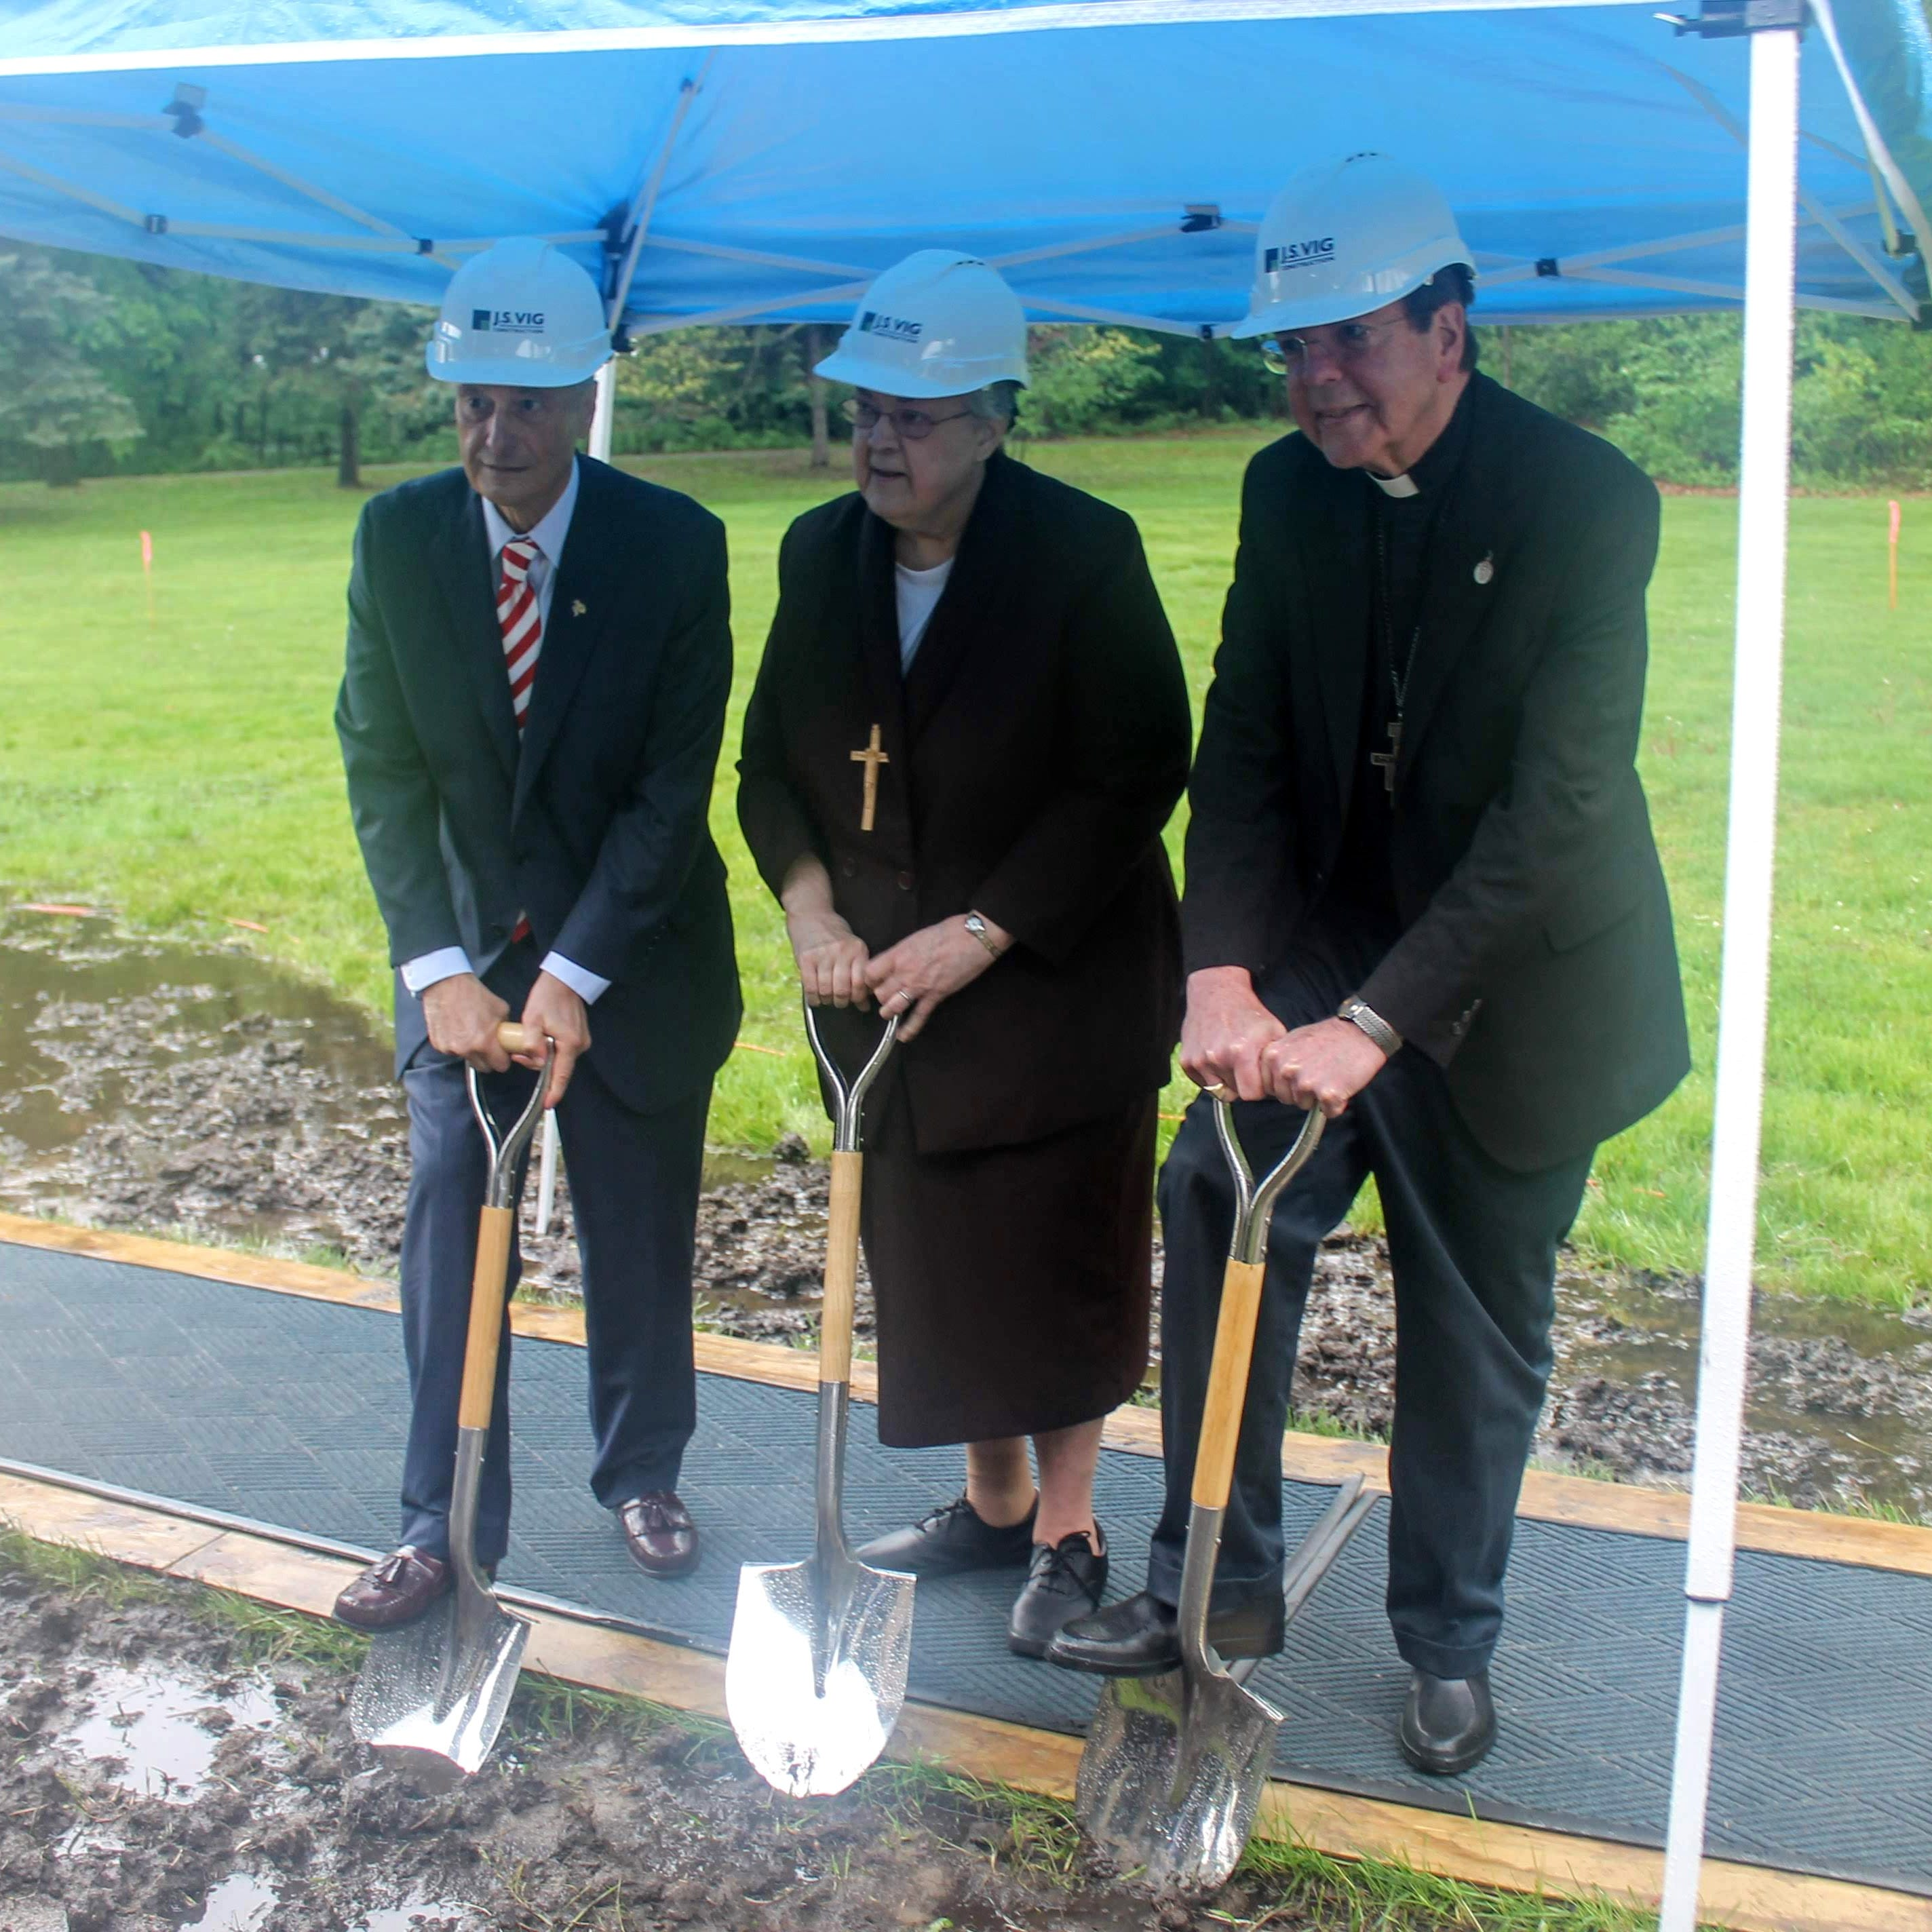 Madonna University breaks ground on new welcome center, Felician Sisters heritage center